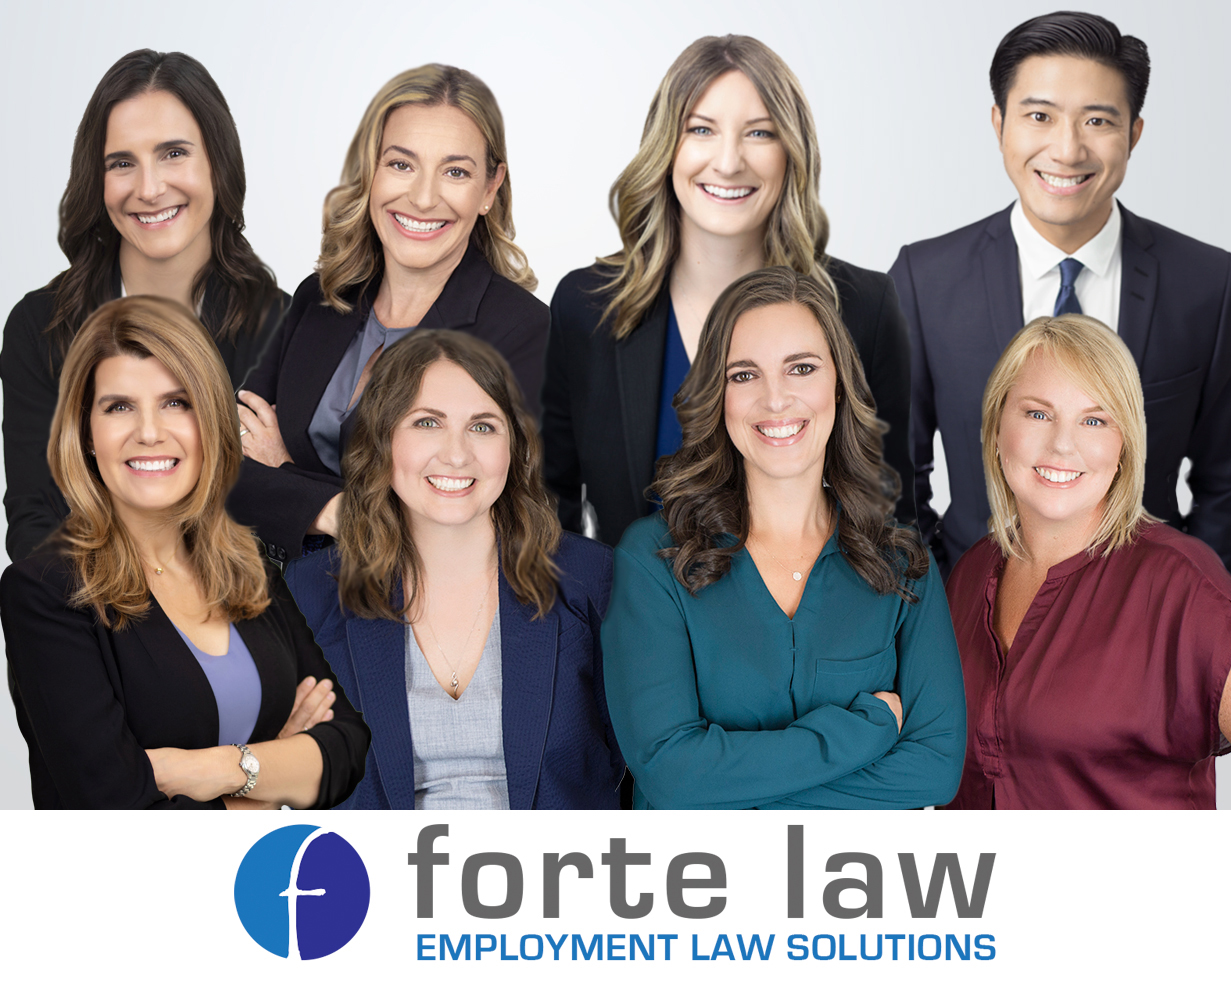 Forte Law Employment Lawyer & Labour Lawyer, Surrey BC. Advising on Employment Law, Labour Law & workplace Human Rights law.